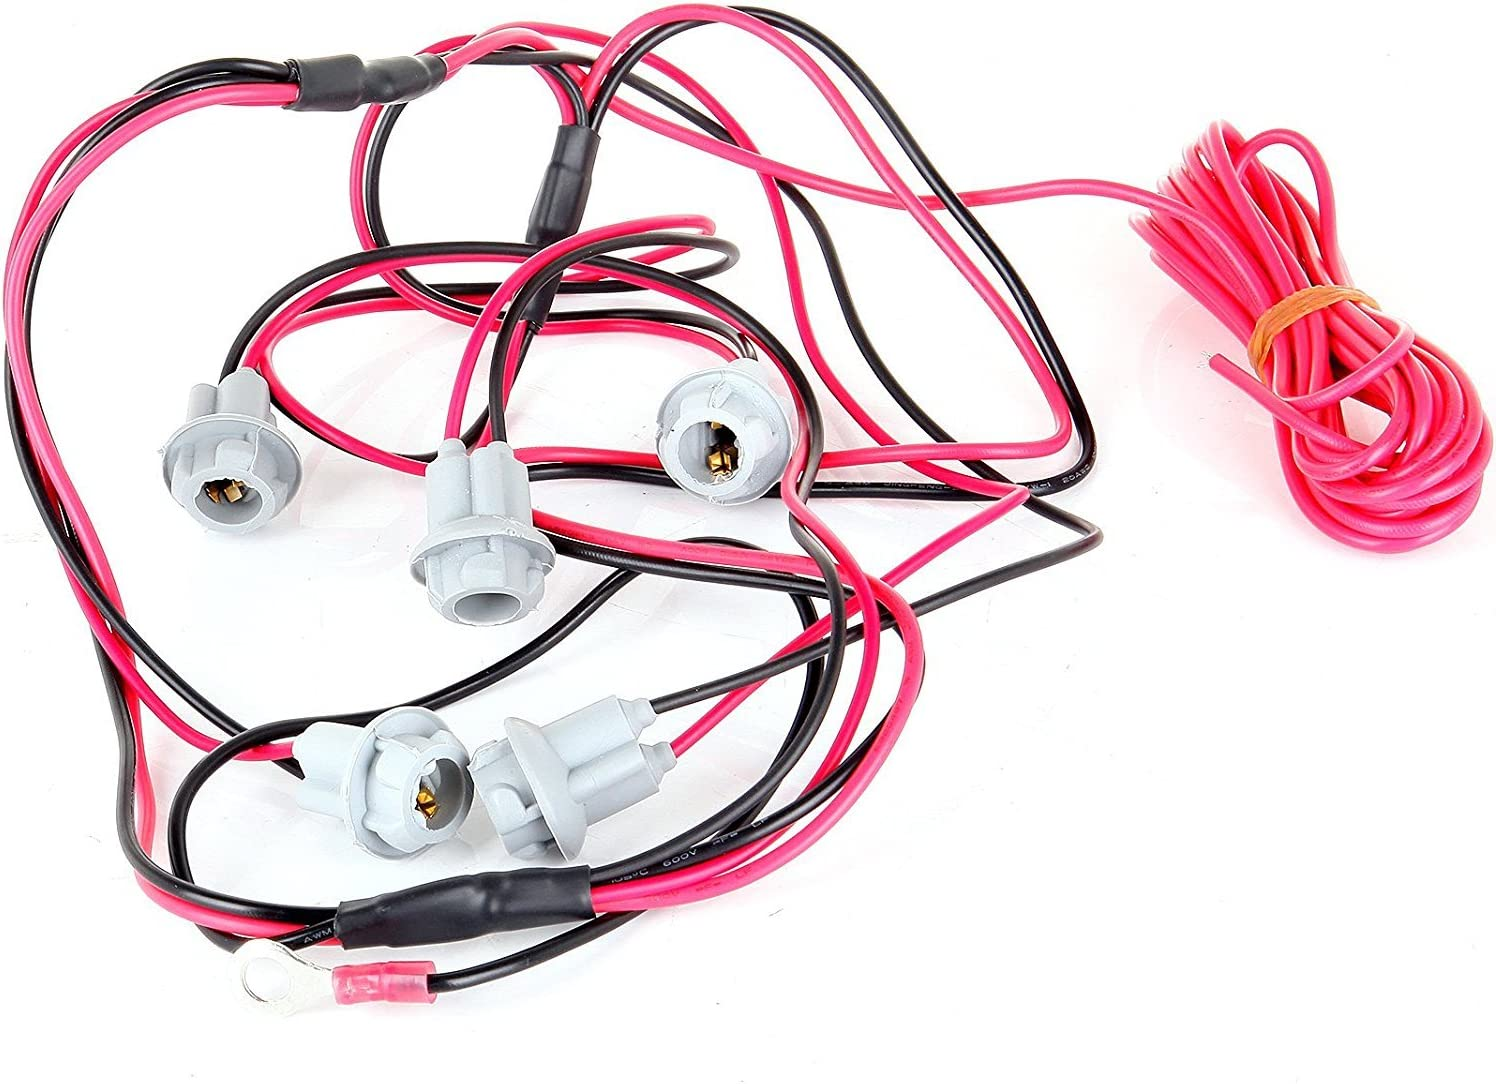 Wiring Pack fit 2003-2012 Dodge Ram 1500 2500 3500 4500 5500 5Pcs Pink T10 led Bulb SCITOO 5Pcs Roof Running Light lamp Covers with Base Housing